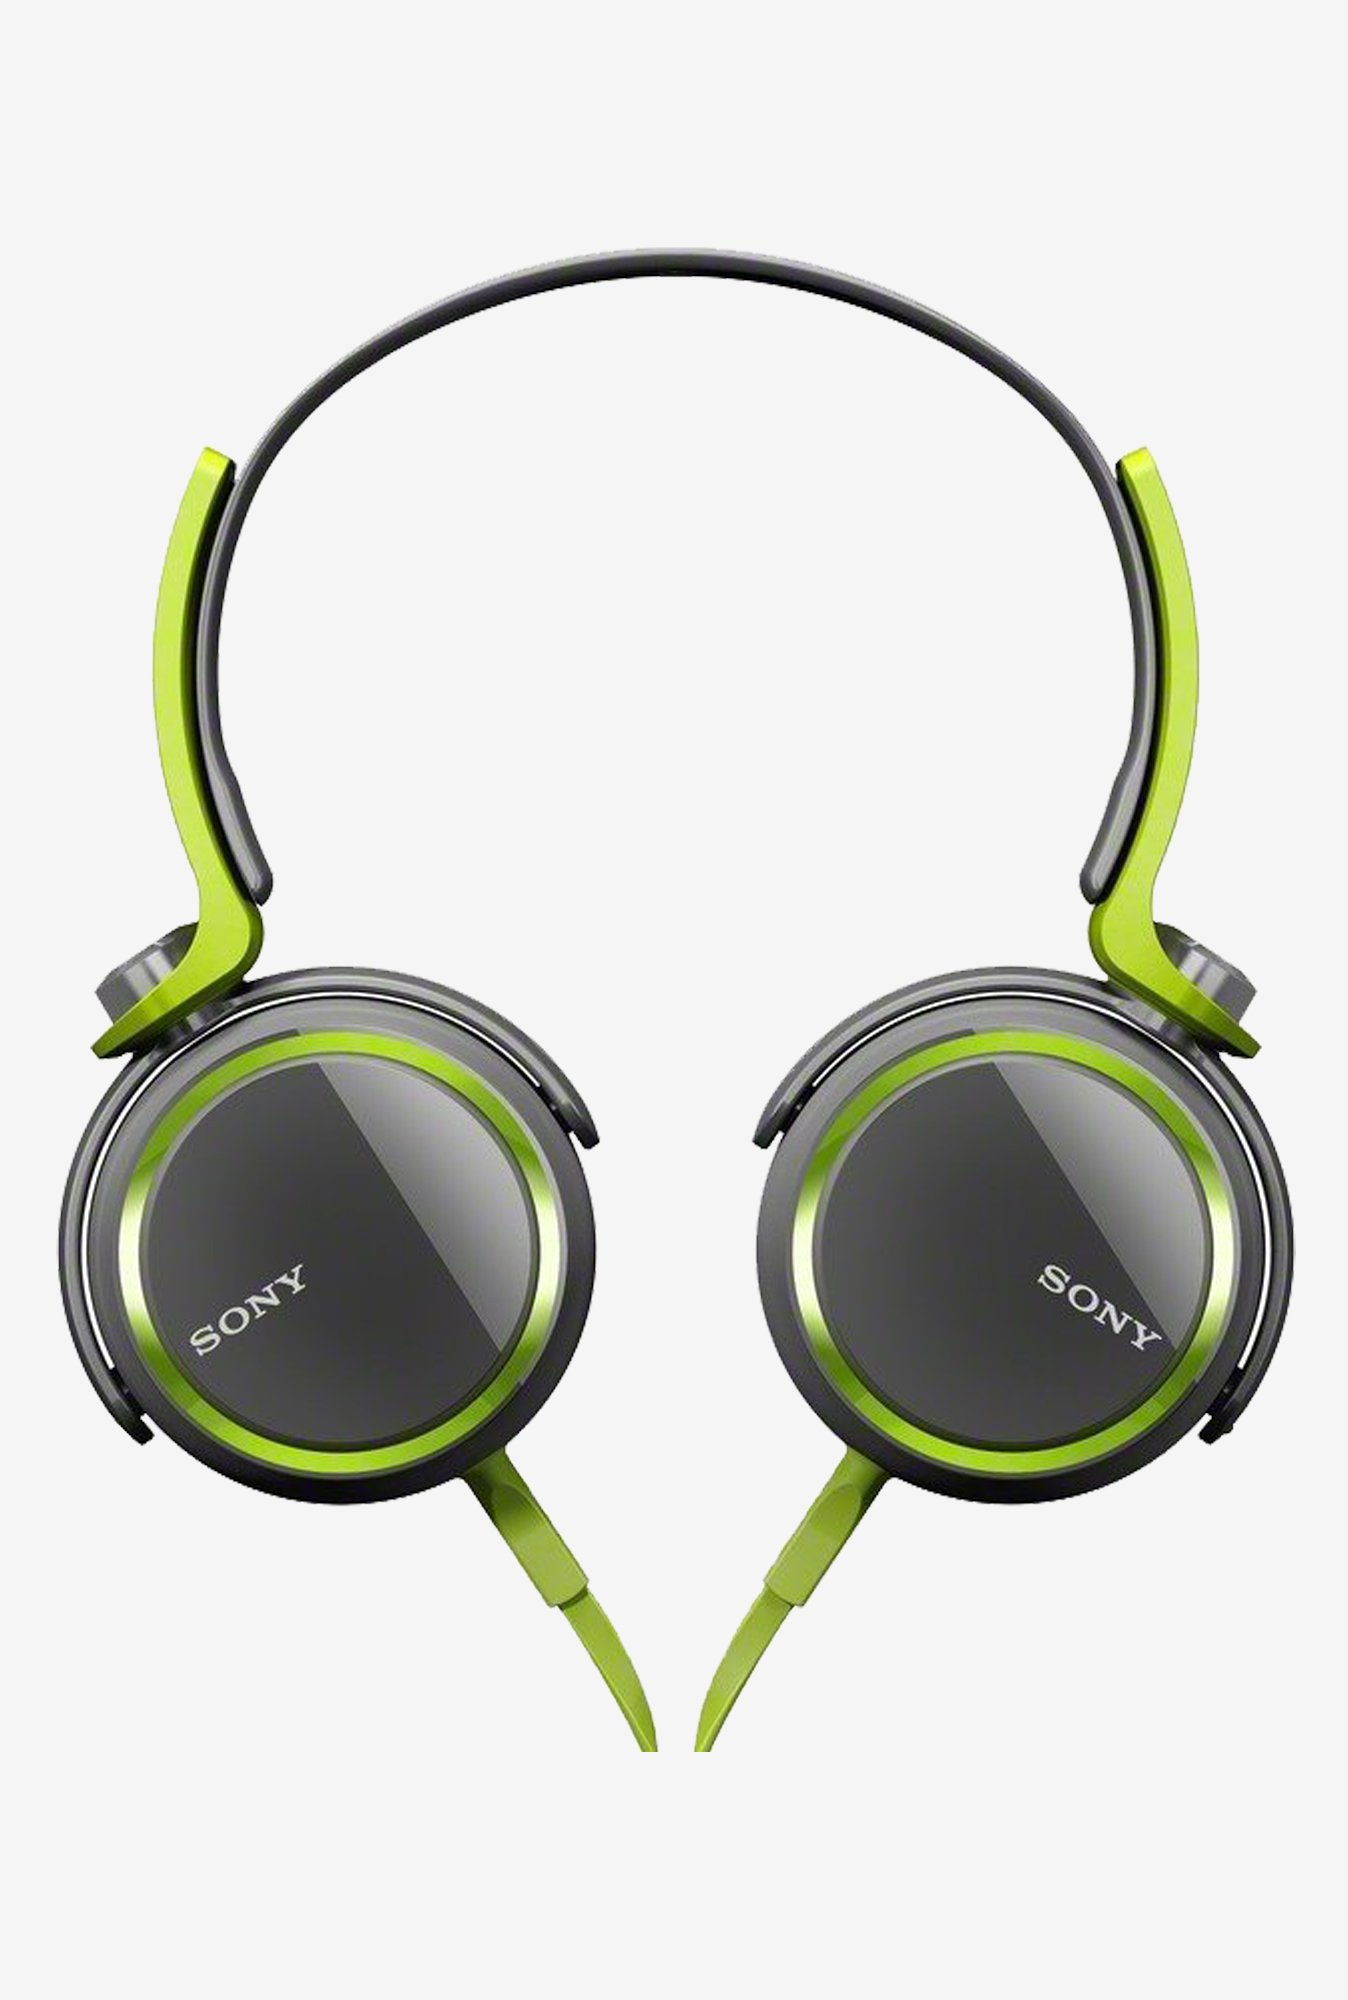 Sony MDRXB400/GRN Extra Bass Over The Headphone Green